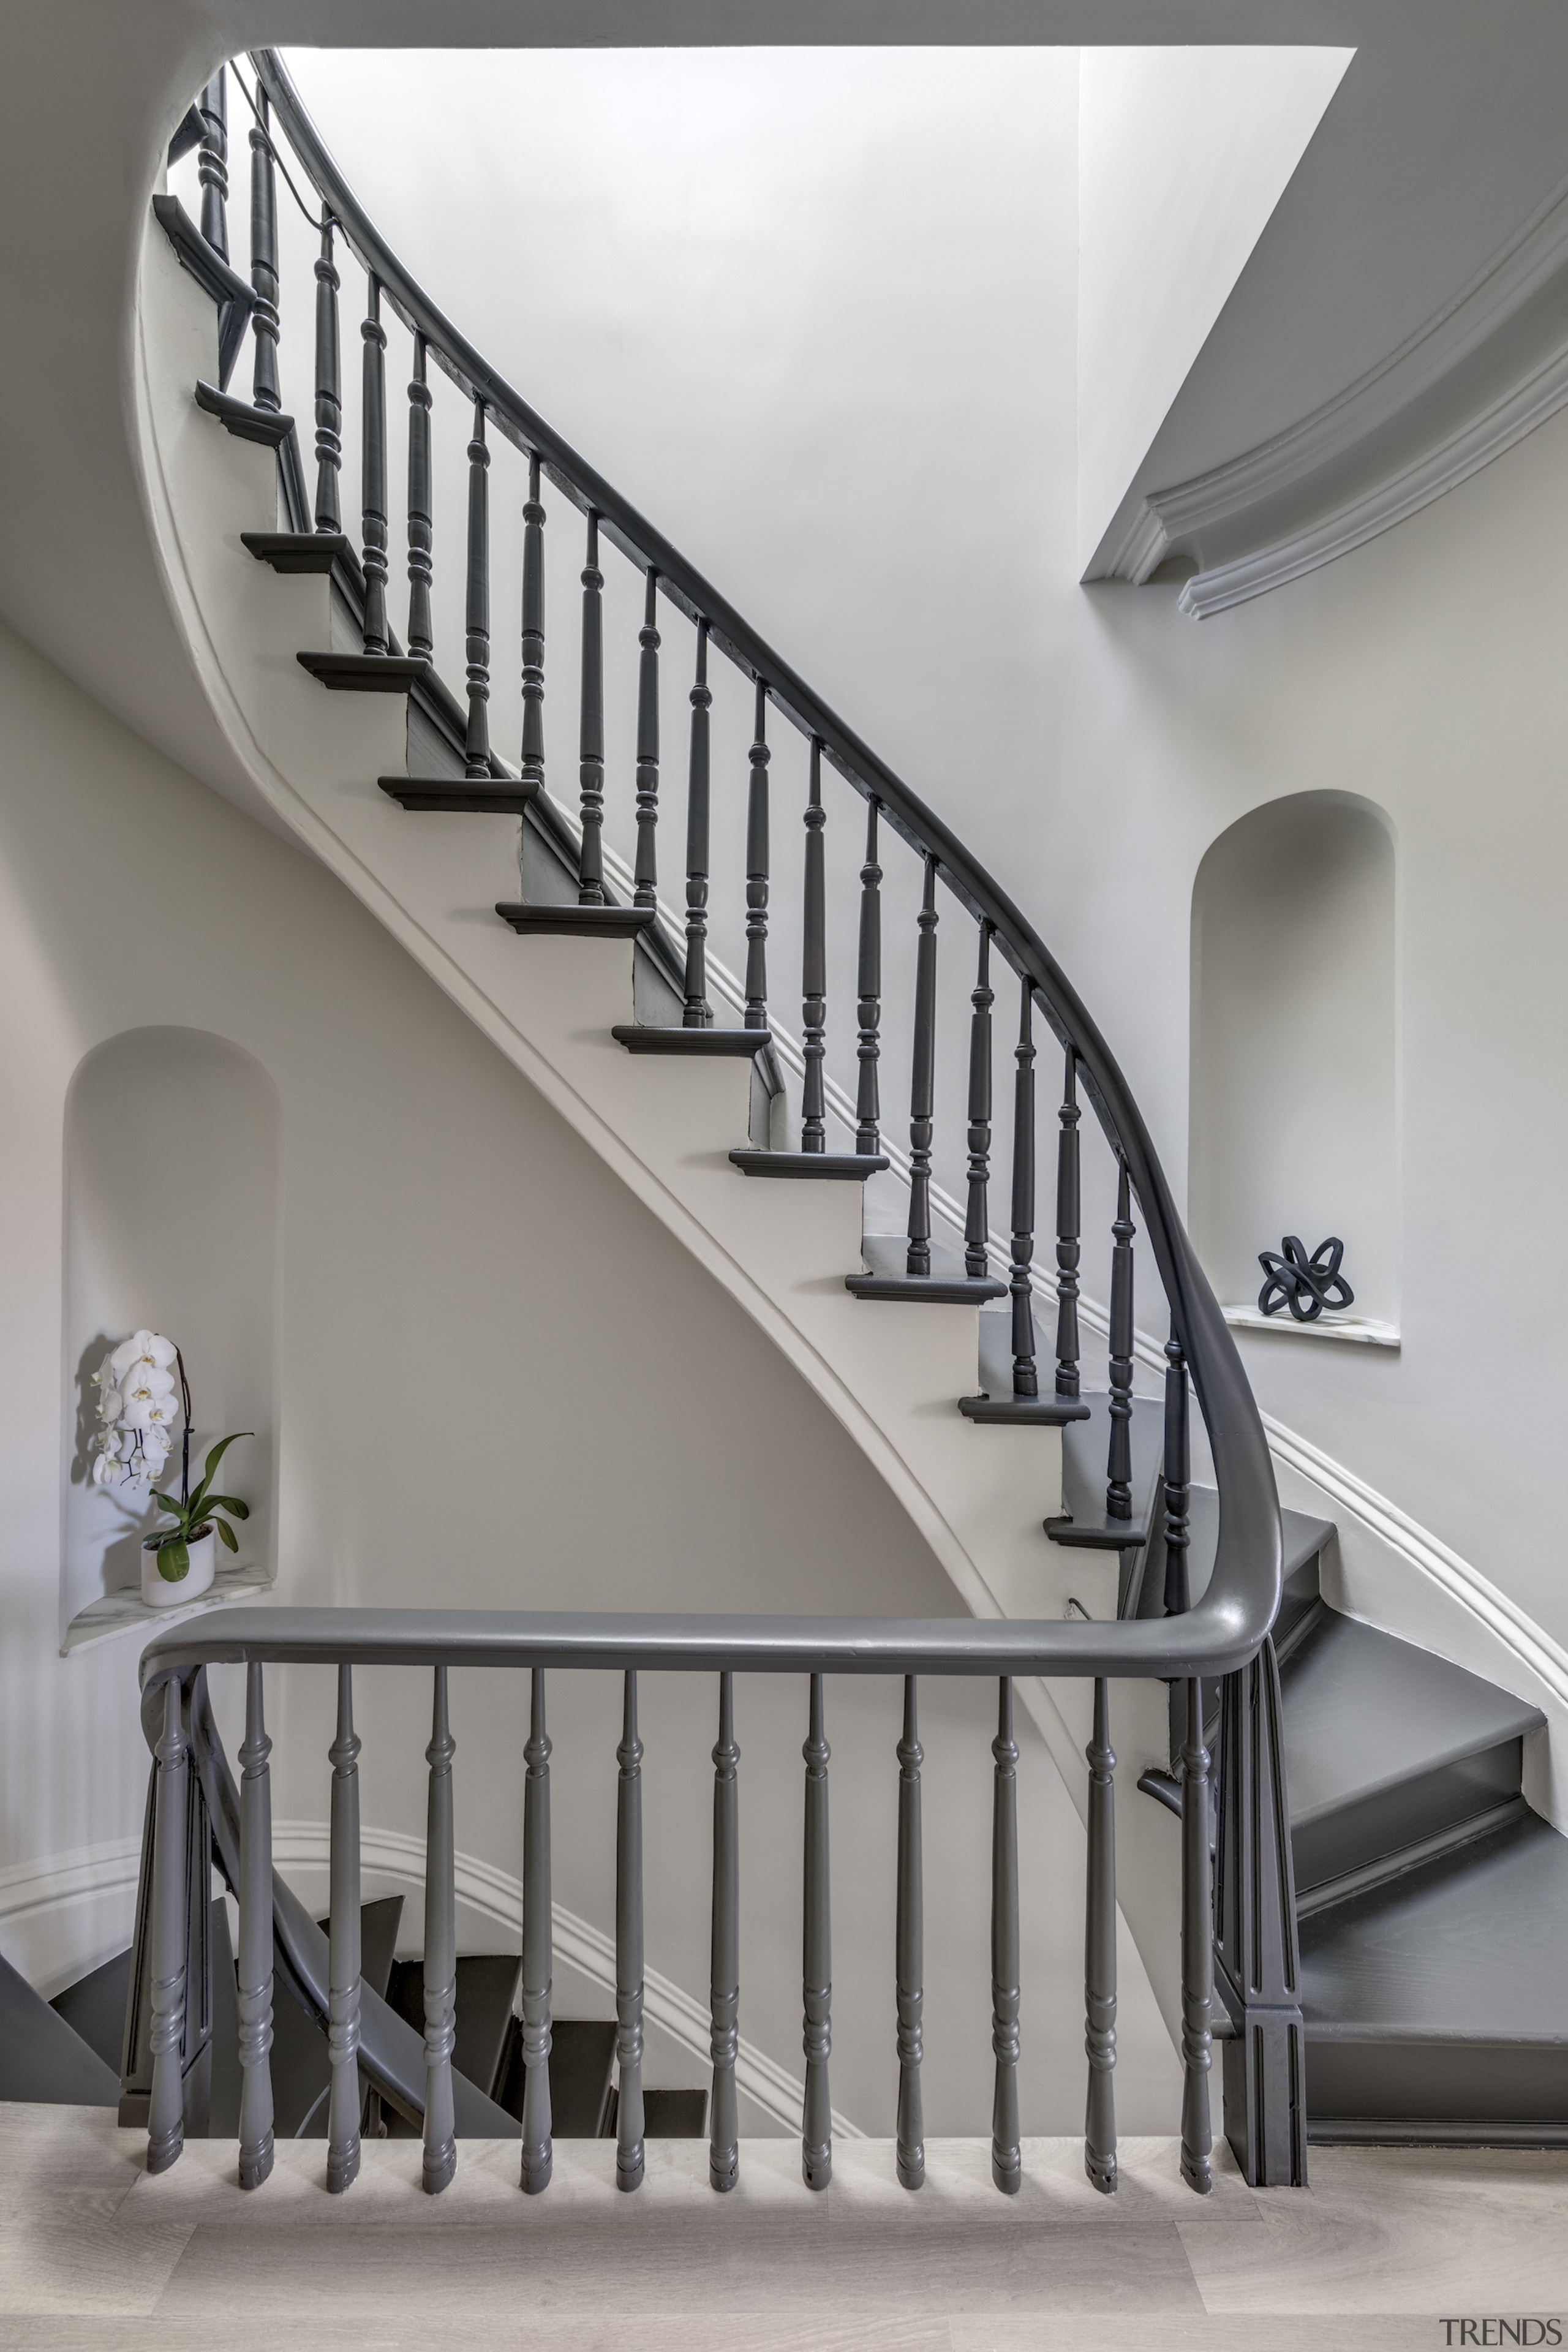 The existing wood stair and handrail were restored.